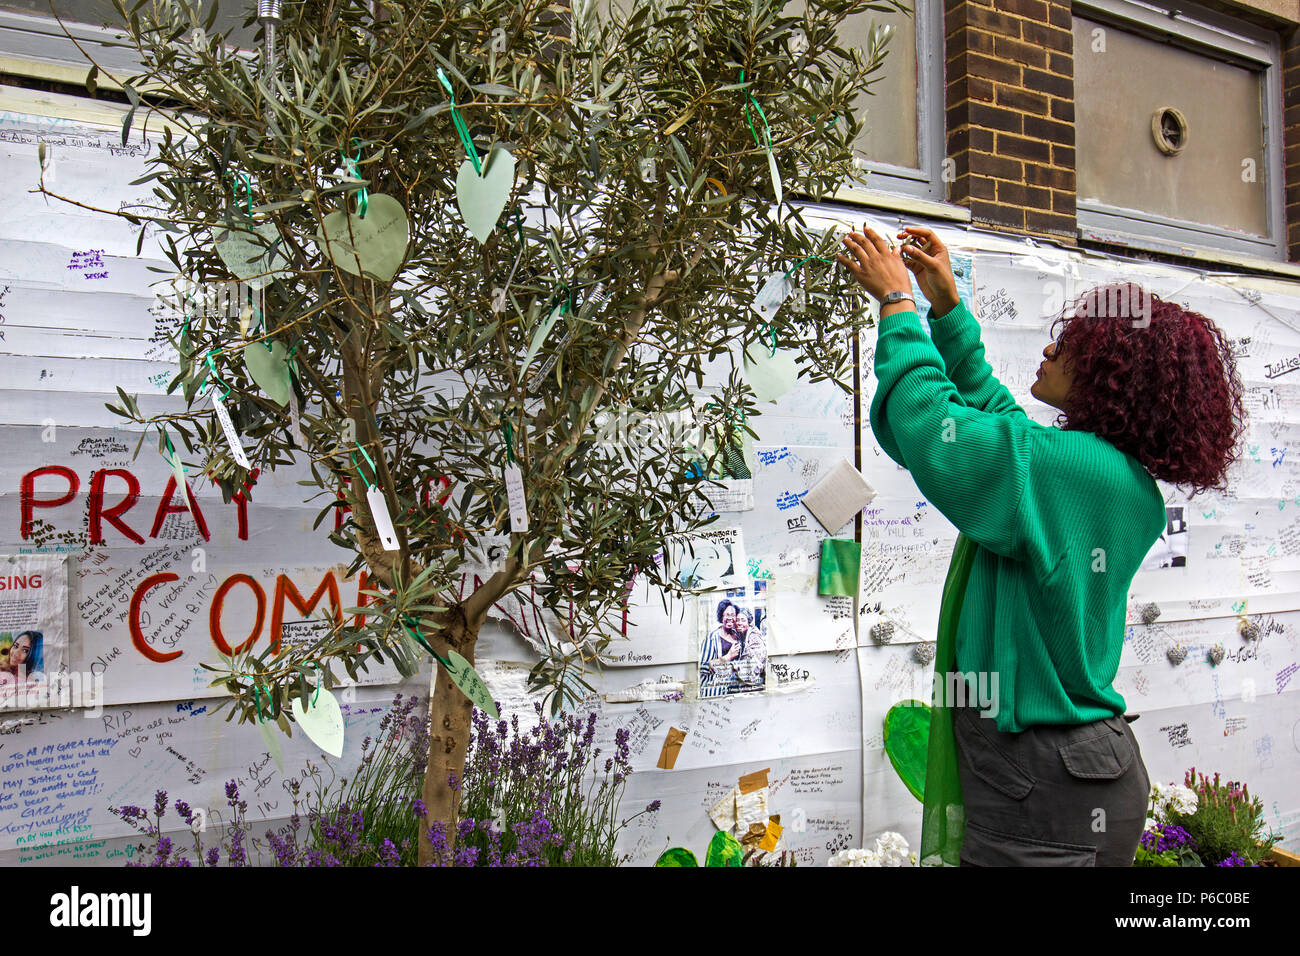 The first anniversary of the 24-storey Grenfell Tower block of public housing flats fire which claimed 72 lives. Young woman hanging messages/prayers on an Olive tree,  South Kensington, London, UK, 14th June 2018. Stock Photo